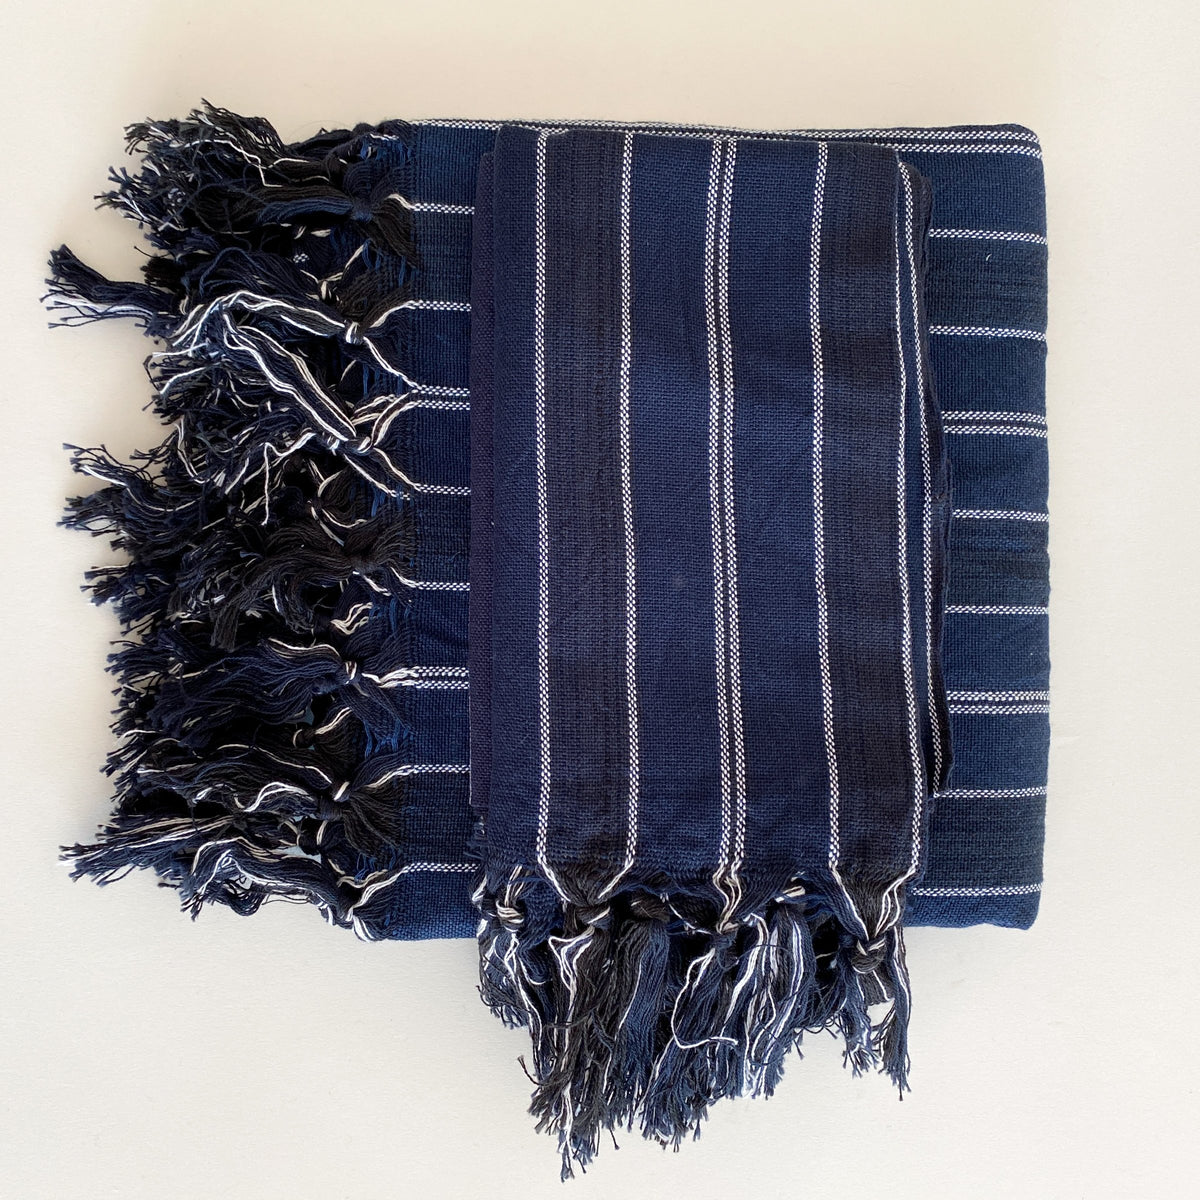 Nilo No:82 Handwoven Turkish Towel